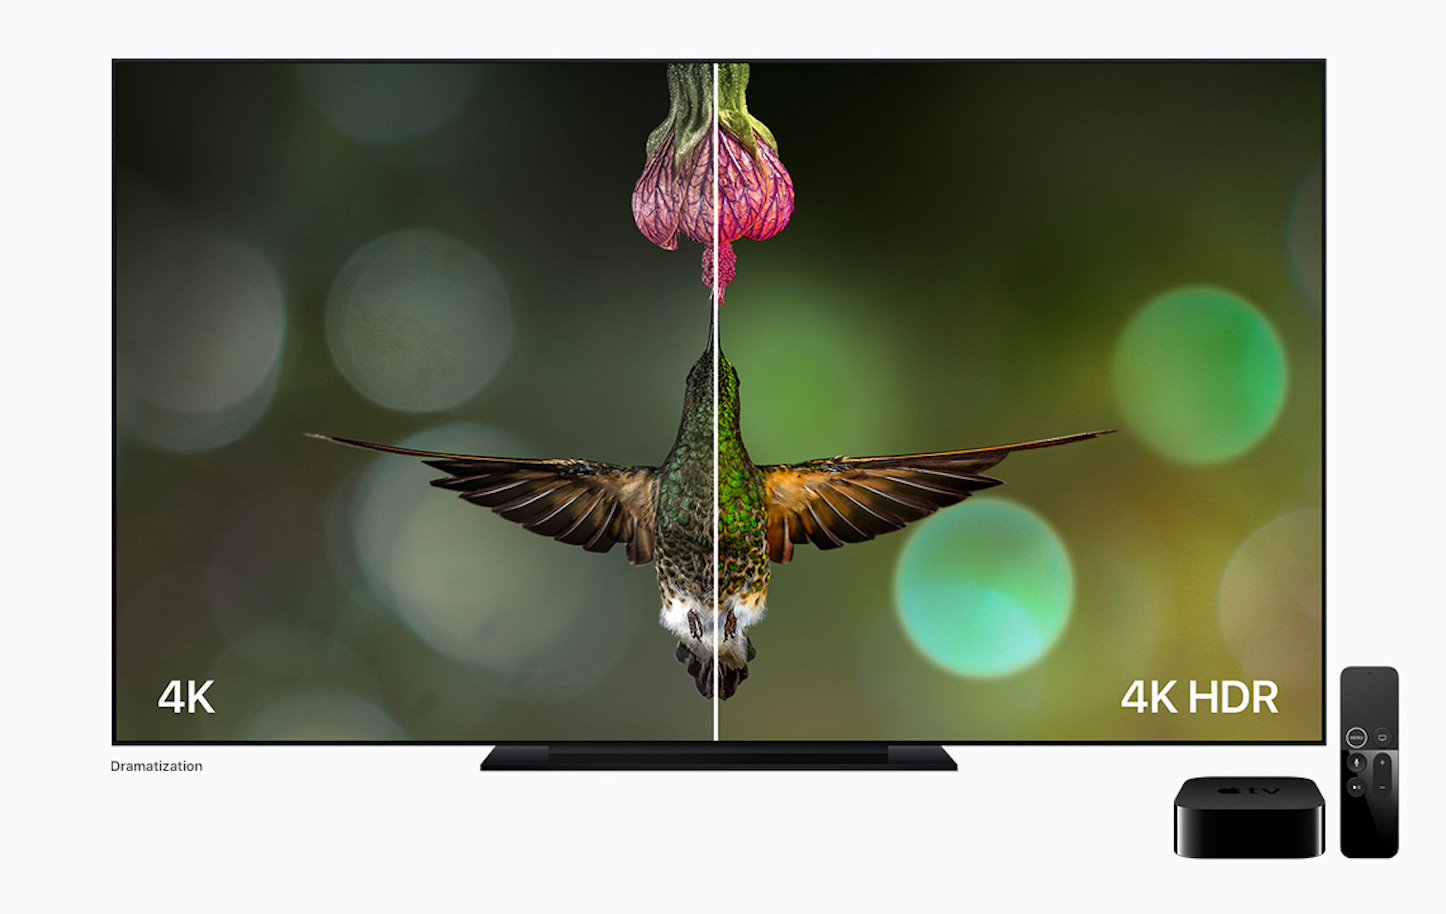 Appletv hummingbird 4K HDR comparison